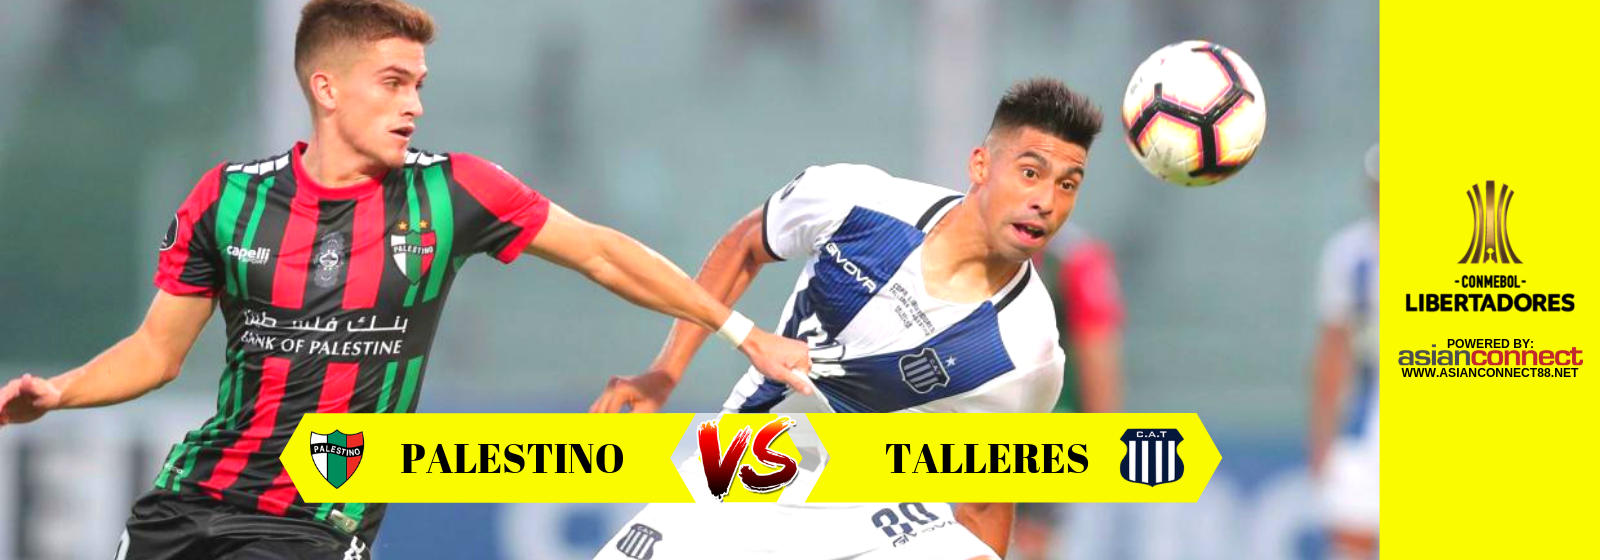 Copa Libertadores: Palestino (Chile) vs Talleres (Argentina) Odds for February 27, 2019